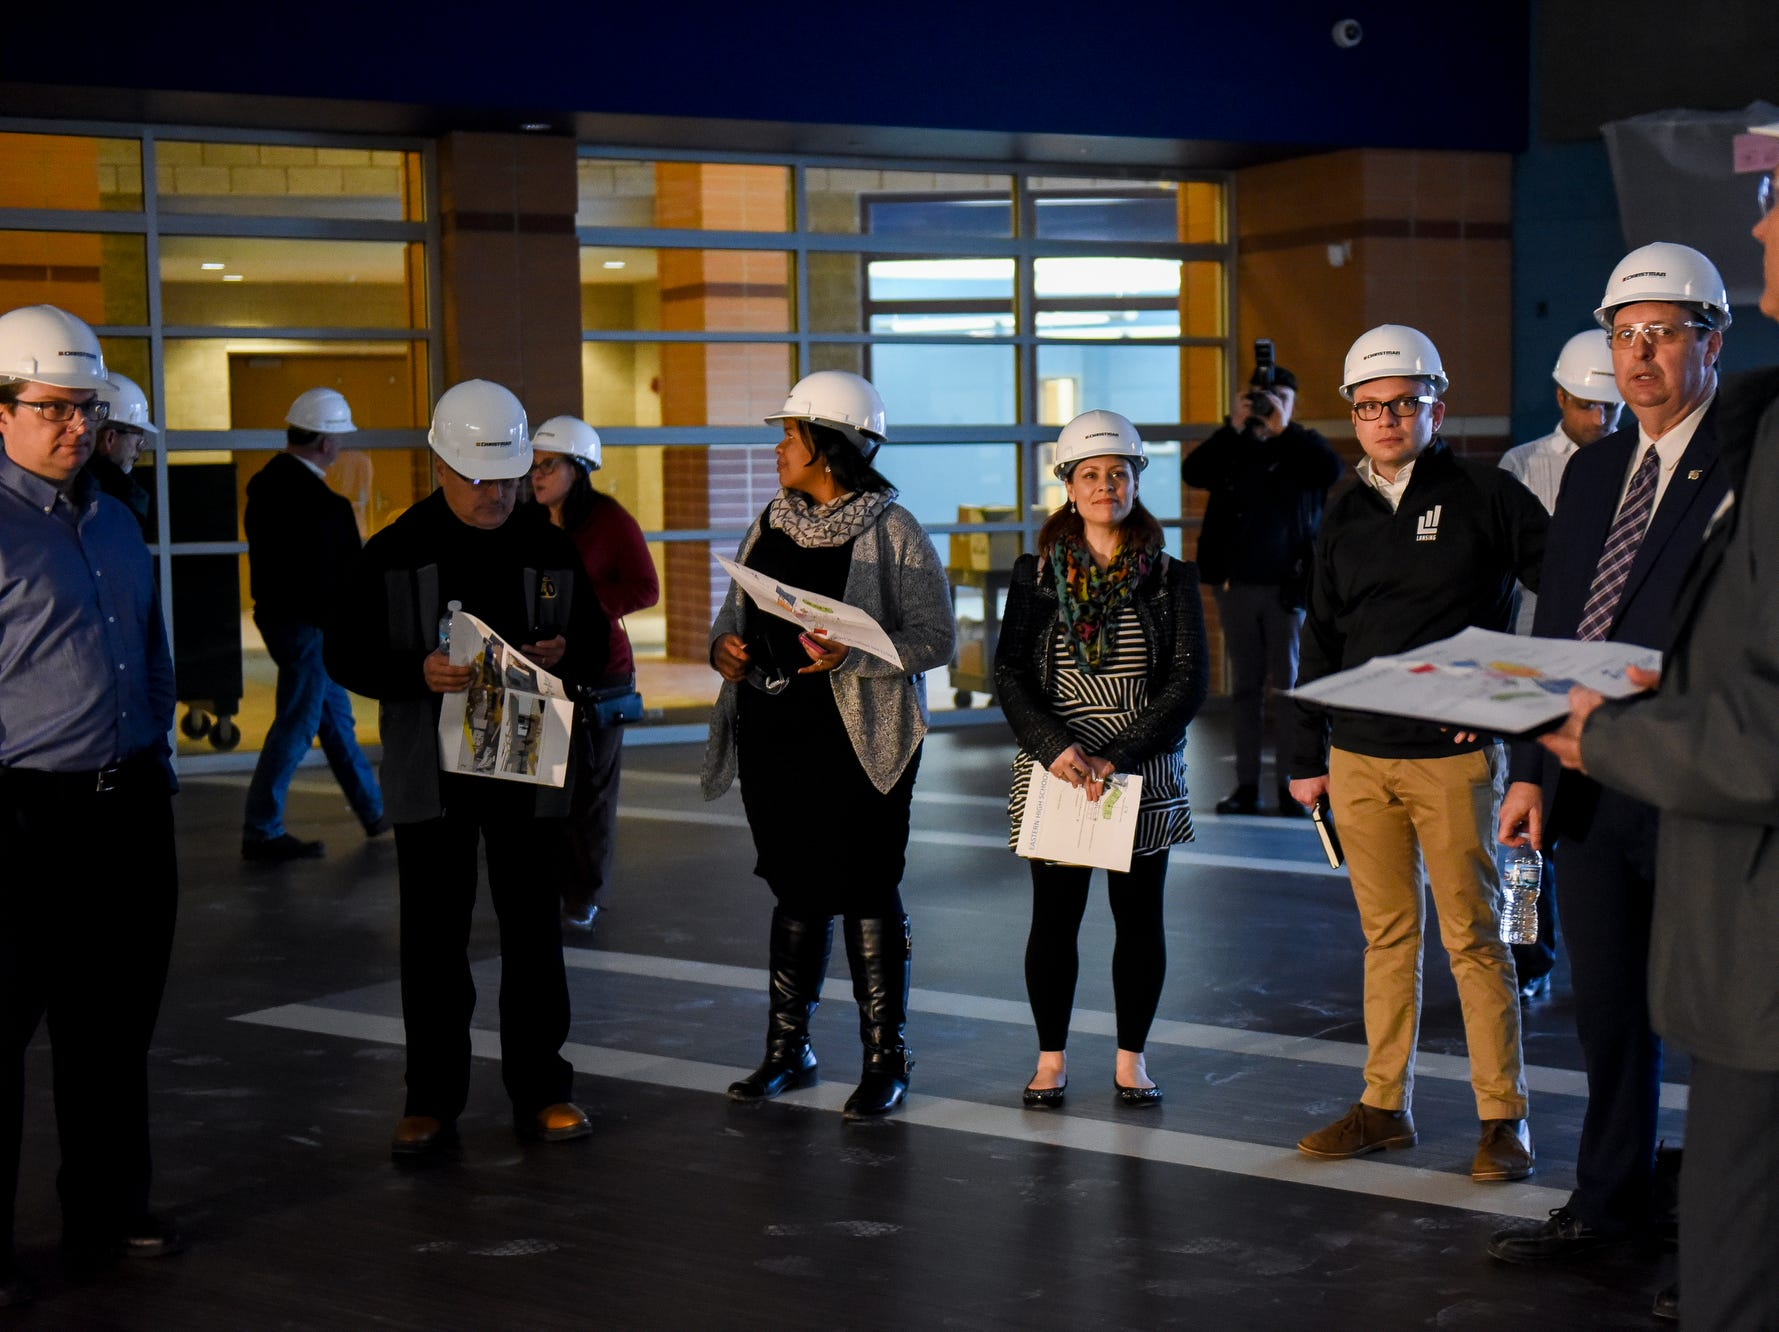 Guests check out the cafeteria during a tour of the construction of the new Eastern High School on Thursday, March 14, 2019, in Lansing. The project is being funded by the district's successful Pathway Promise millage, which was passed by voters in 2016. The building was formerly Pattengill Academy.